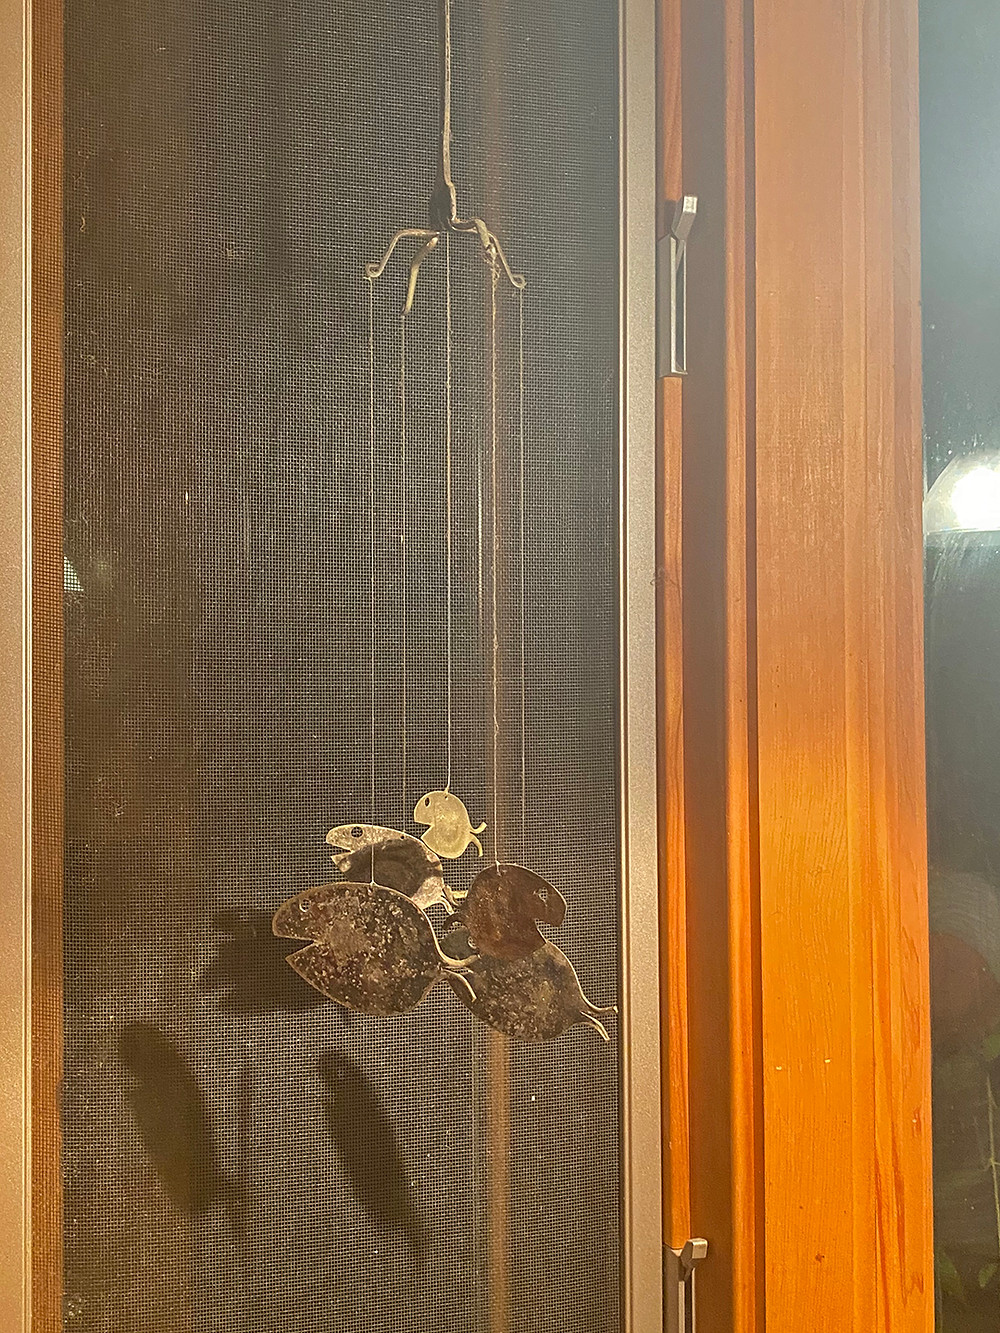 Wind chime in the kitchen window